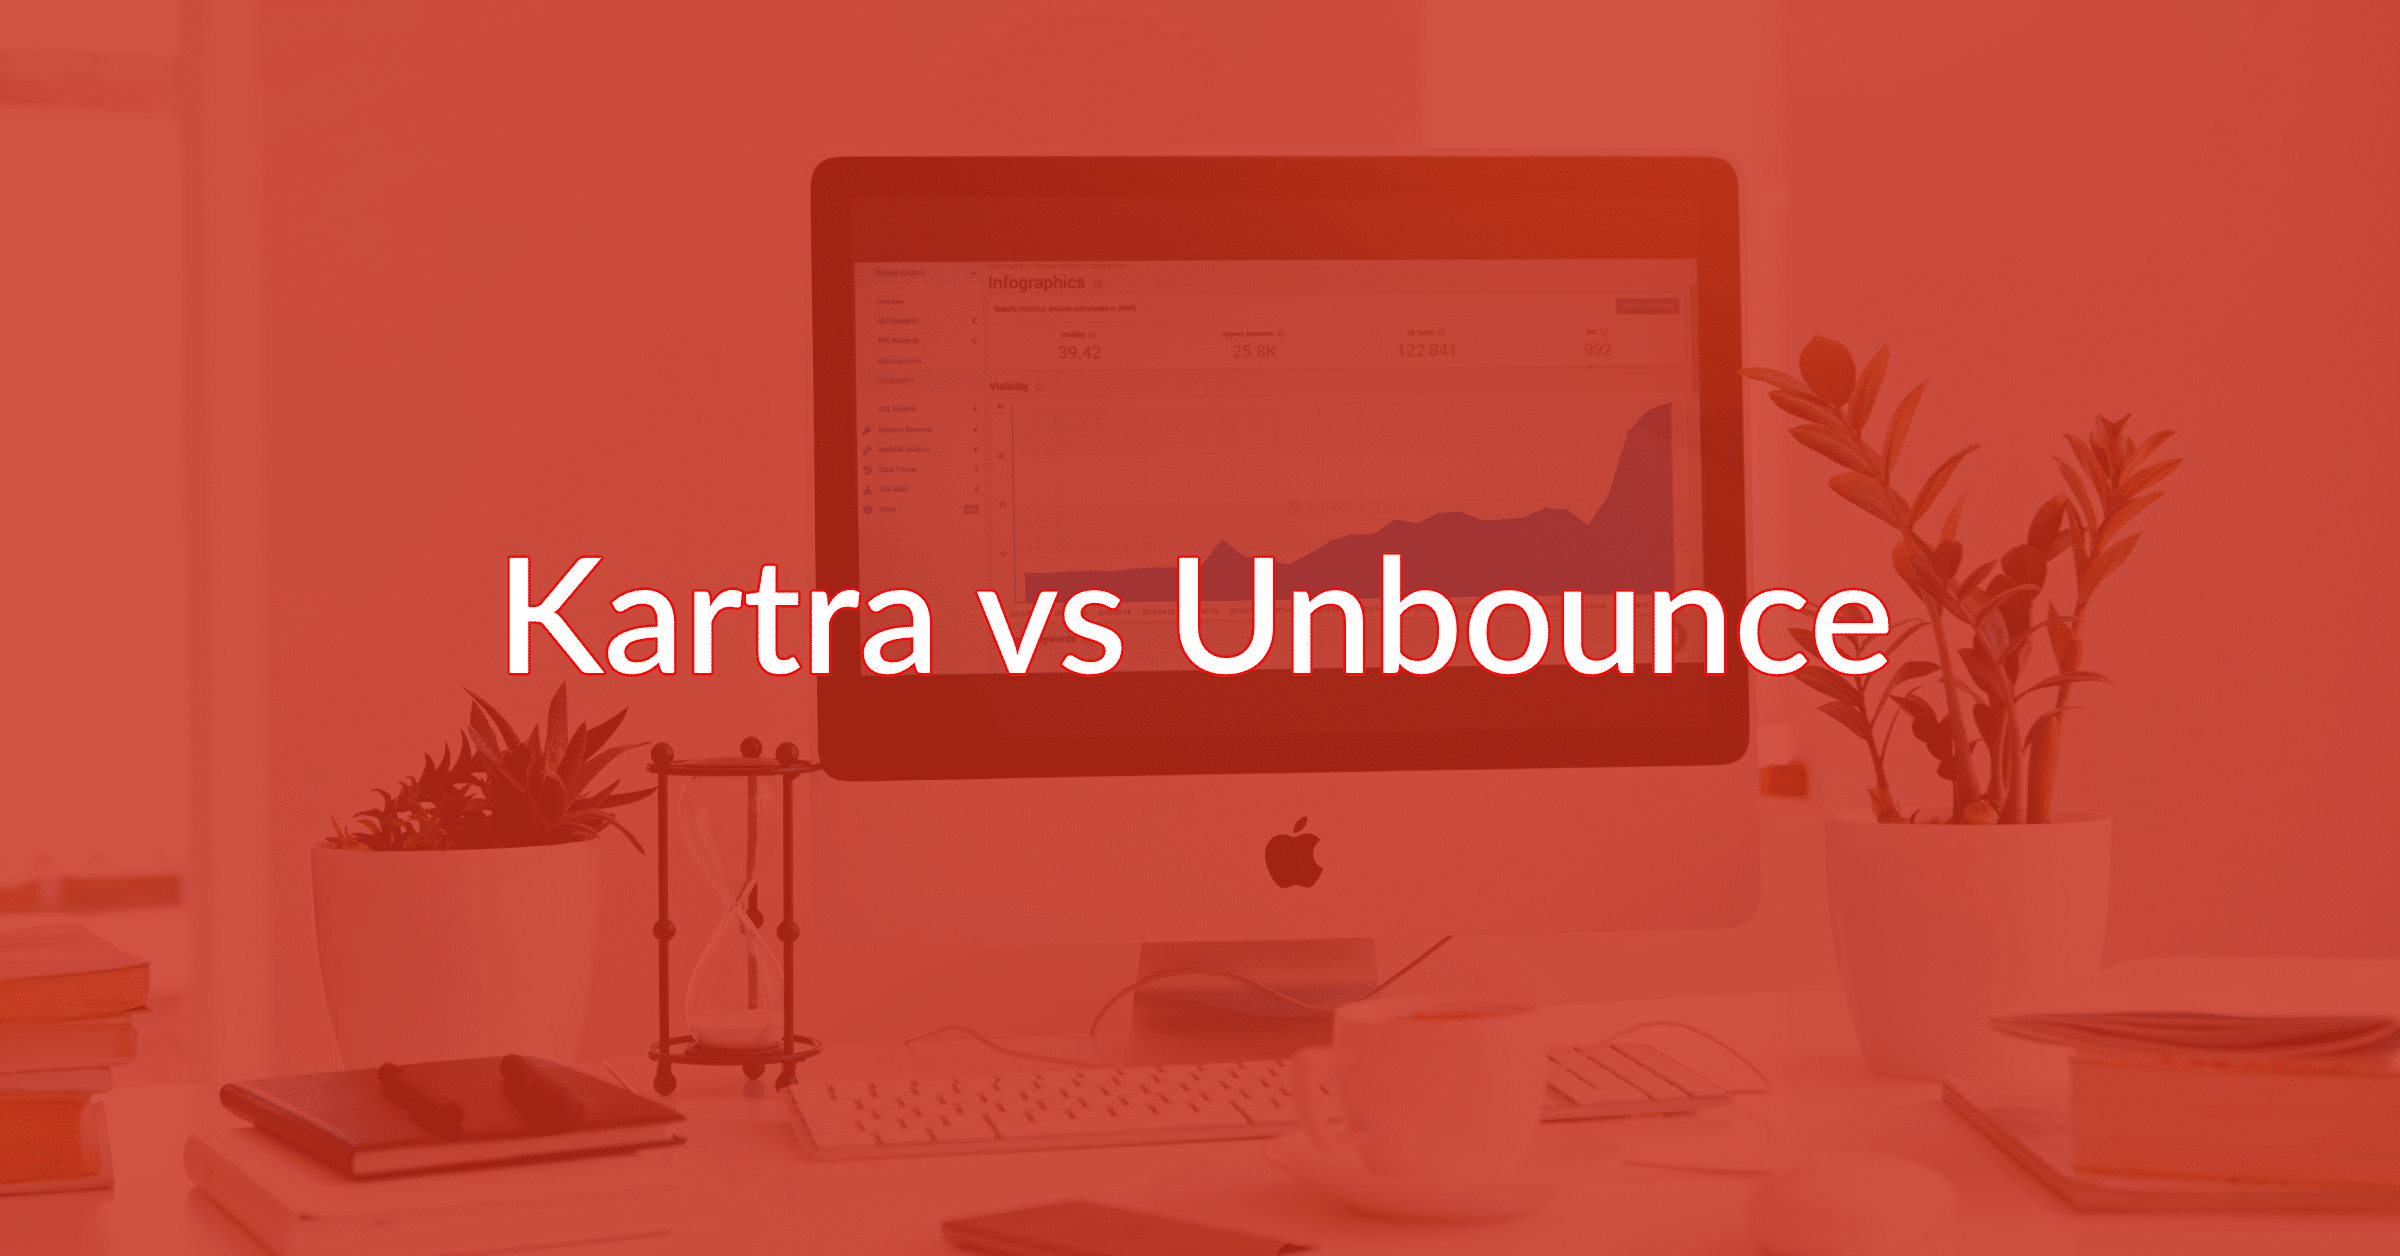 Kartra vs Unbounce: Which Platform Performs The Best?